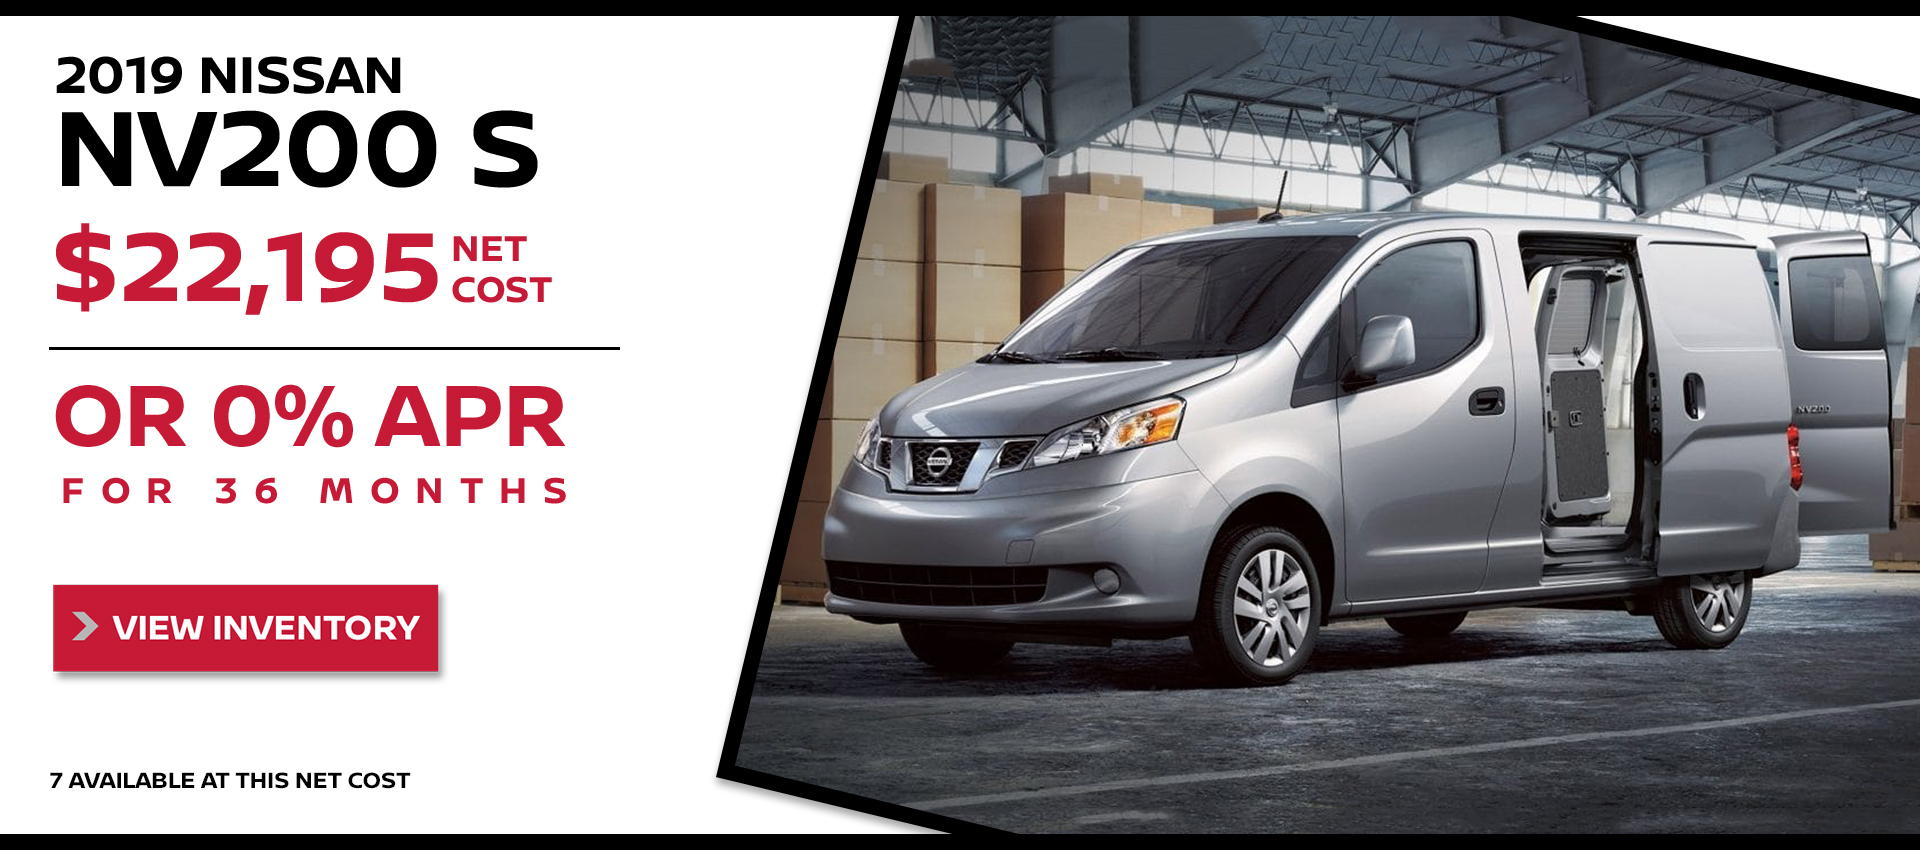 Mossy Nissan - Nissan NV200 $22,195 Purchase HP